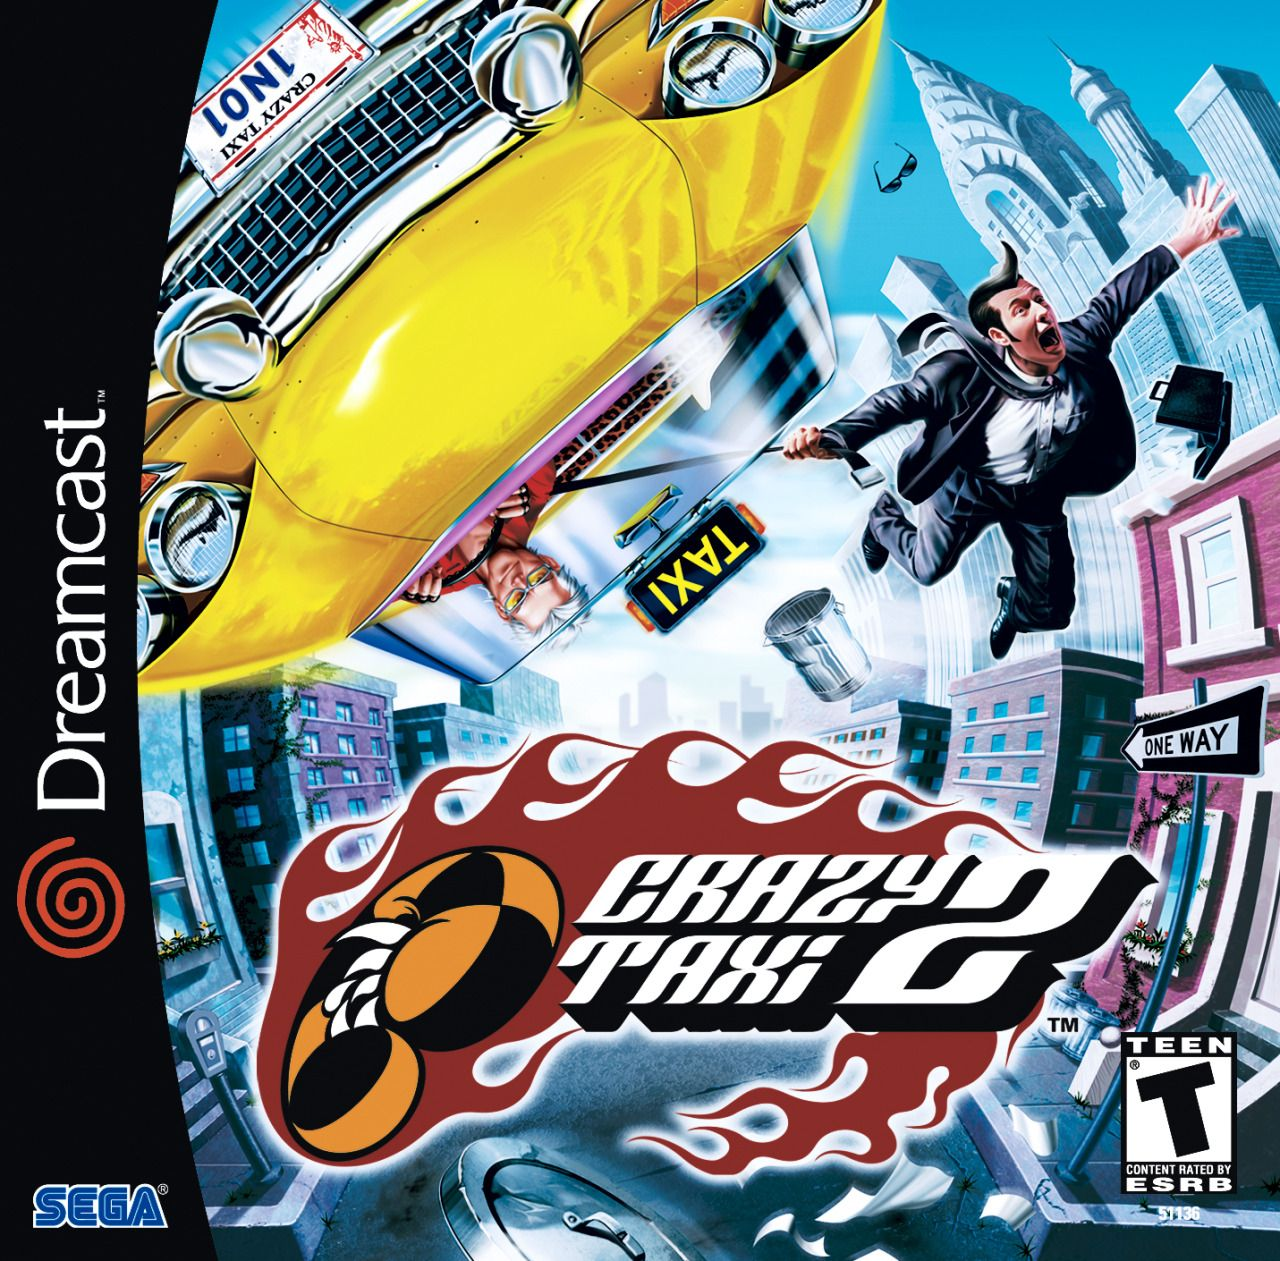 Cover Artwork Of Crazy Taxi 2 For The Sega Dreamcast I Liked The